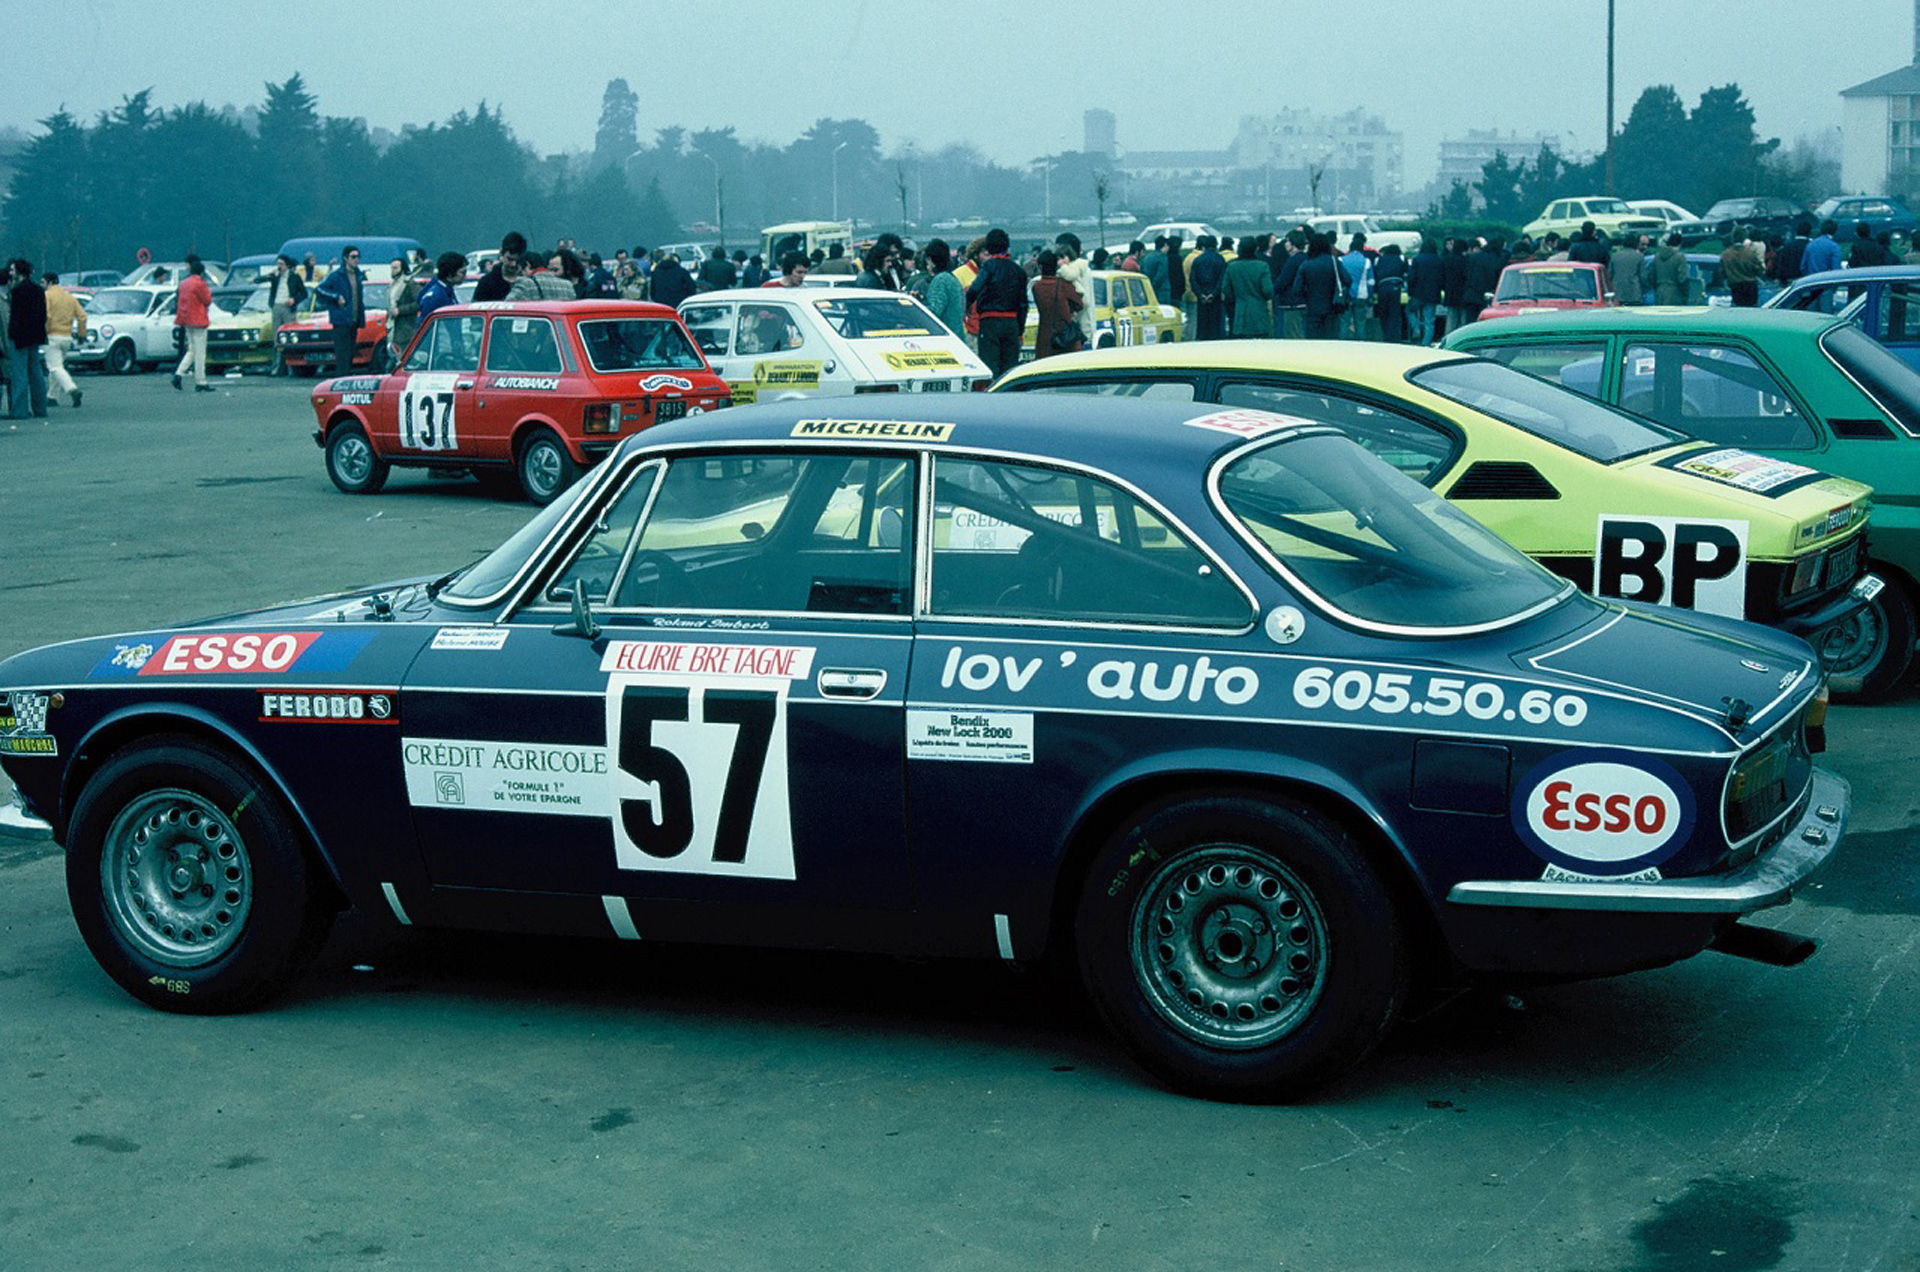 ALFA 2000 GTV ARMOR 1976 - Photo Thierry Le Bras